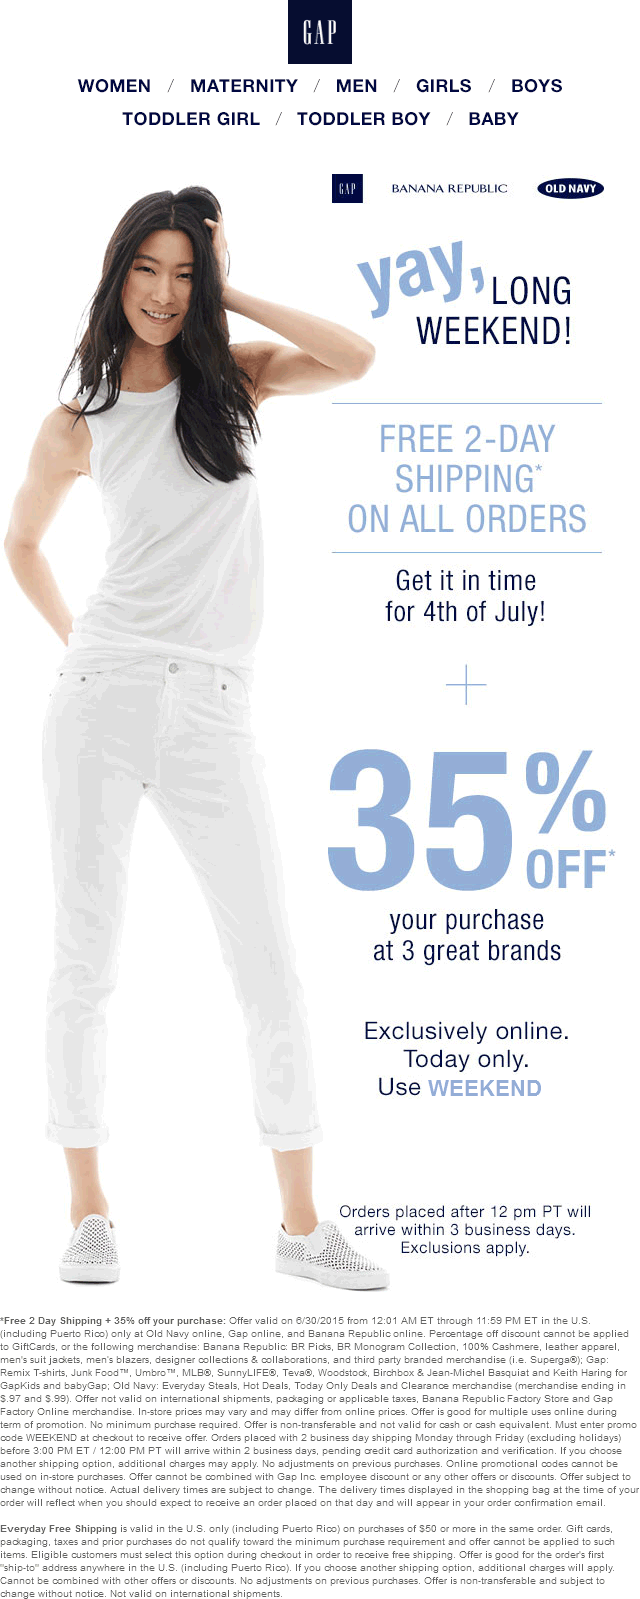 Old Navy Coupon July 2018 35% off + free priority shipping online today at Old Navy, Gap & Banana Republic via promo code WEEKEND